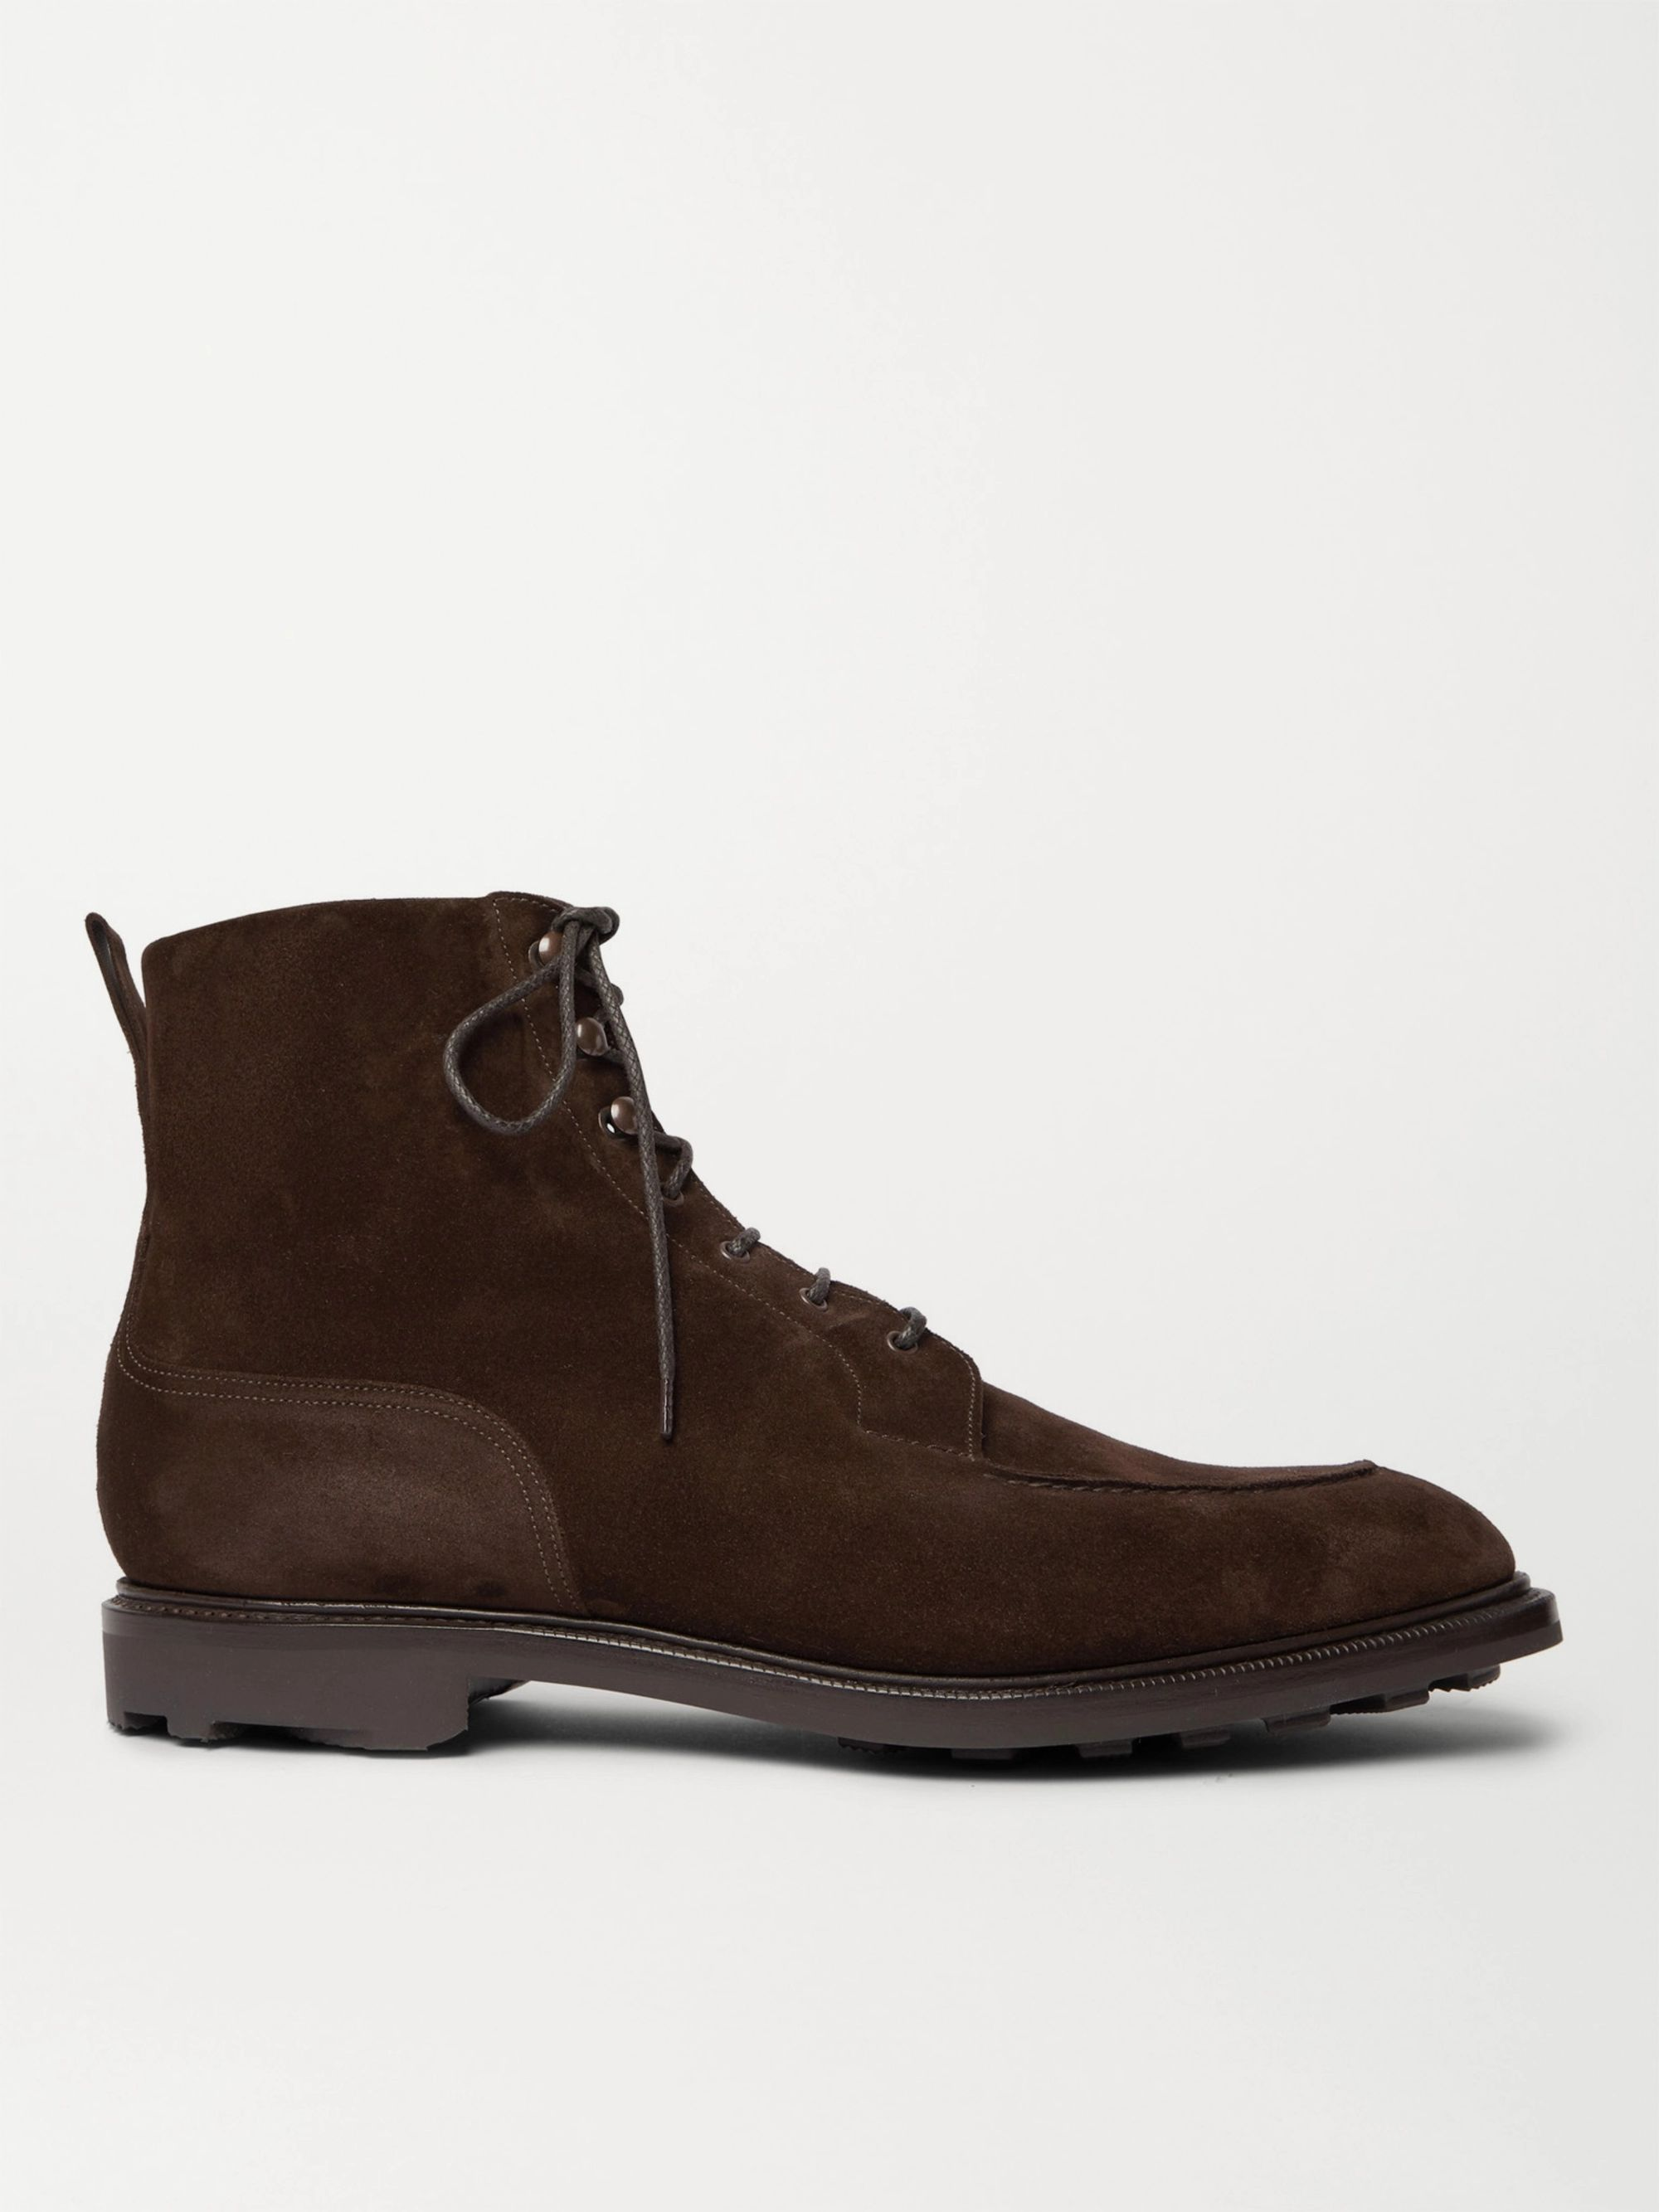 Edward Green Cranleigh Shearling-Lined Full-Grain Leather Boots